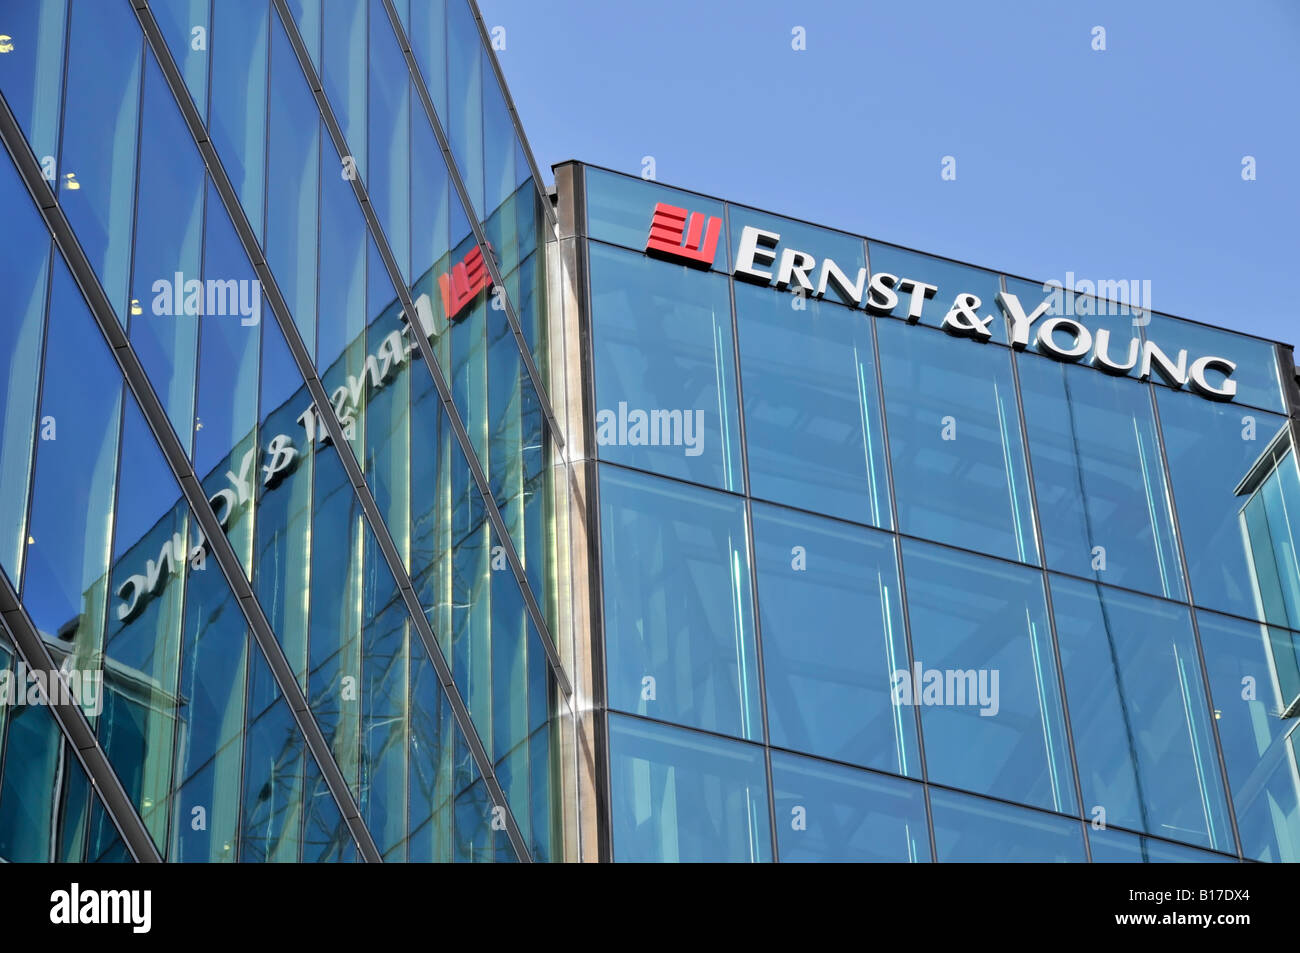 London Southwark offices of Ernst & Young with sign reflected in mirror glass cladding - Stock Image